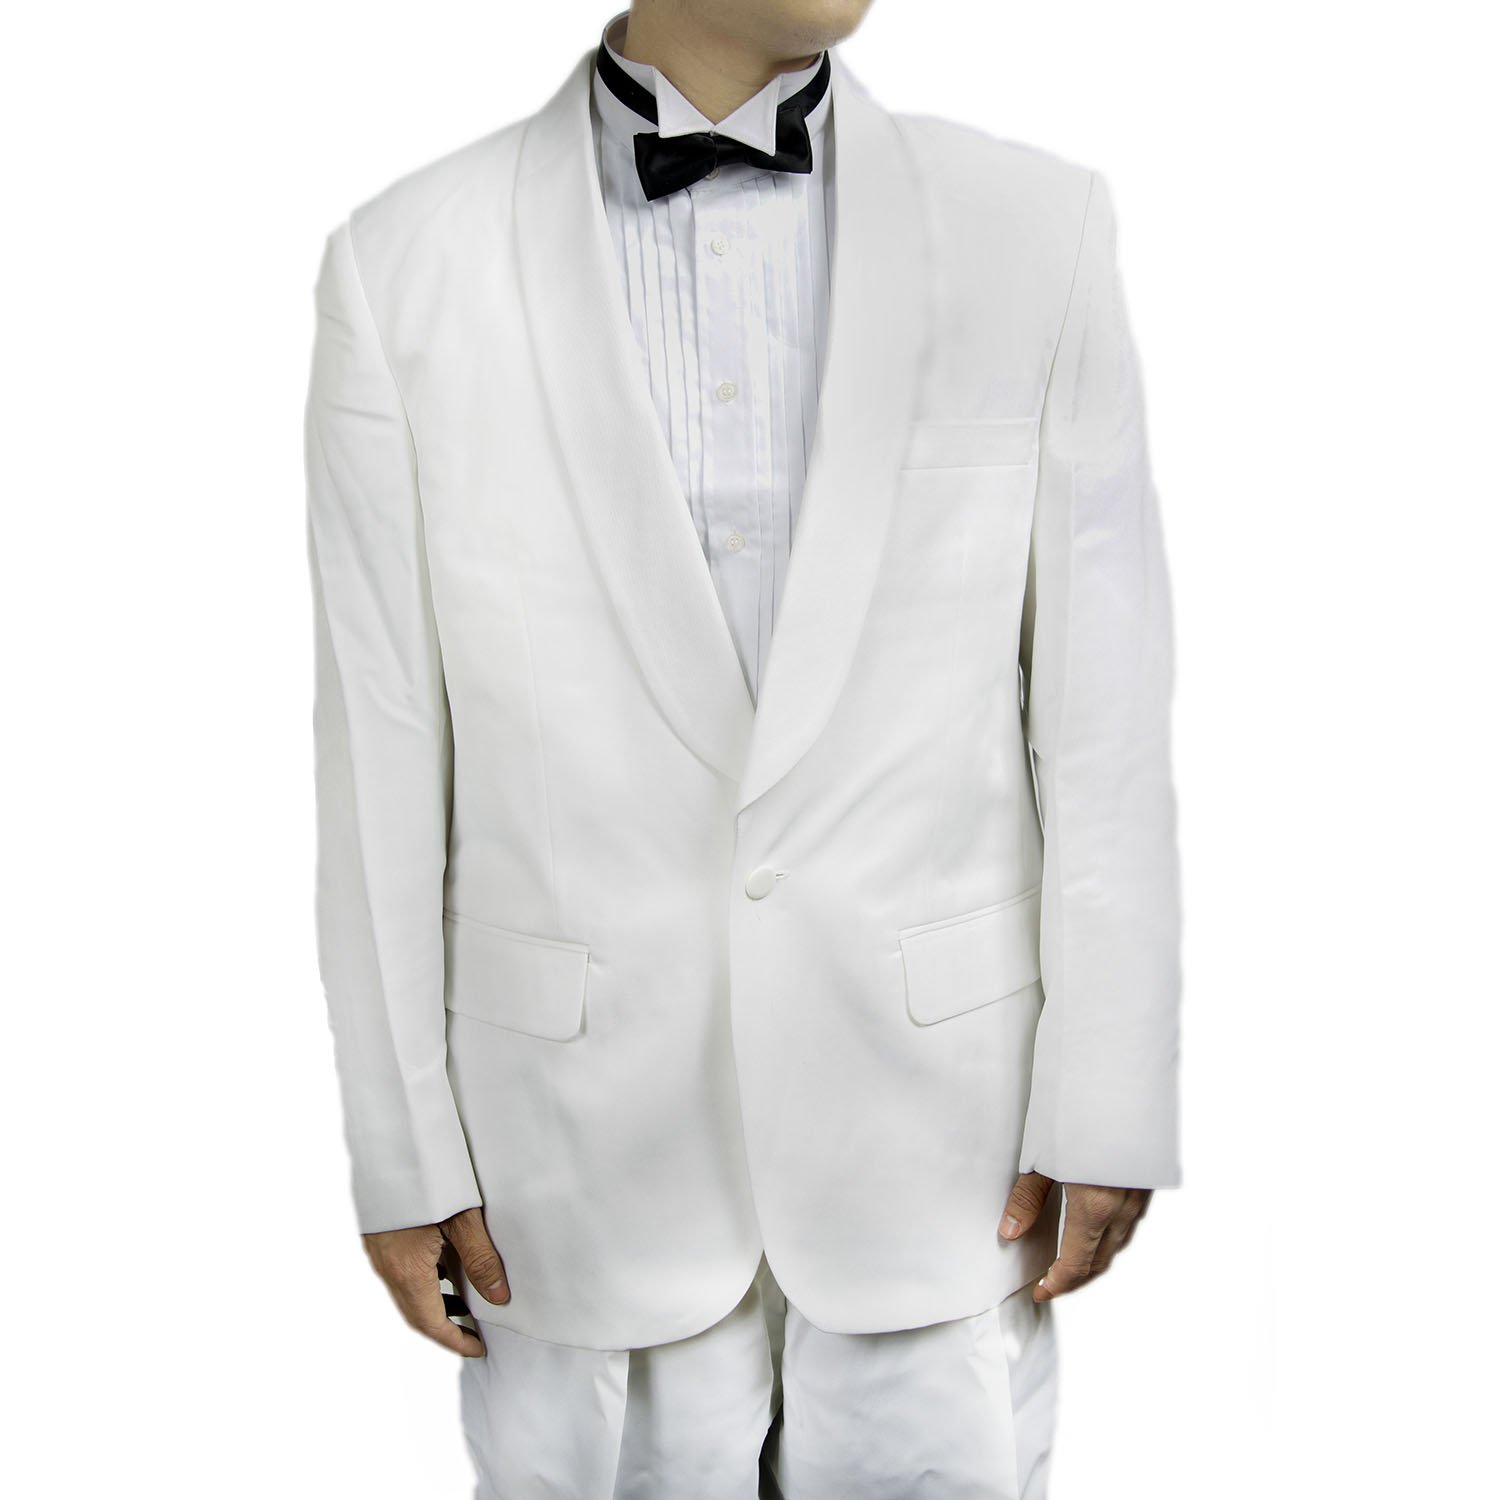 New Mens Classic One Button White Tuxedo Dinner Jacket with Shawl by Broadway Tuxmakers